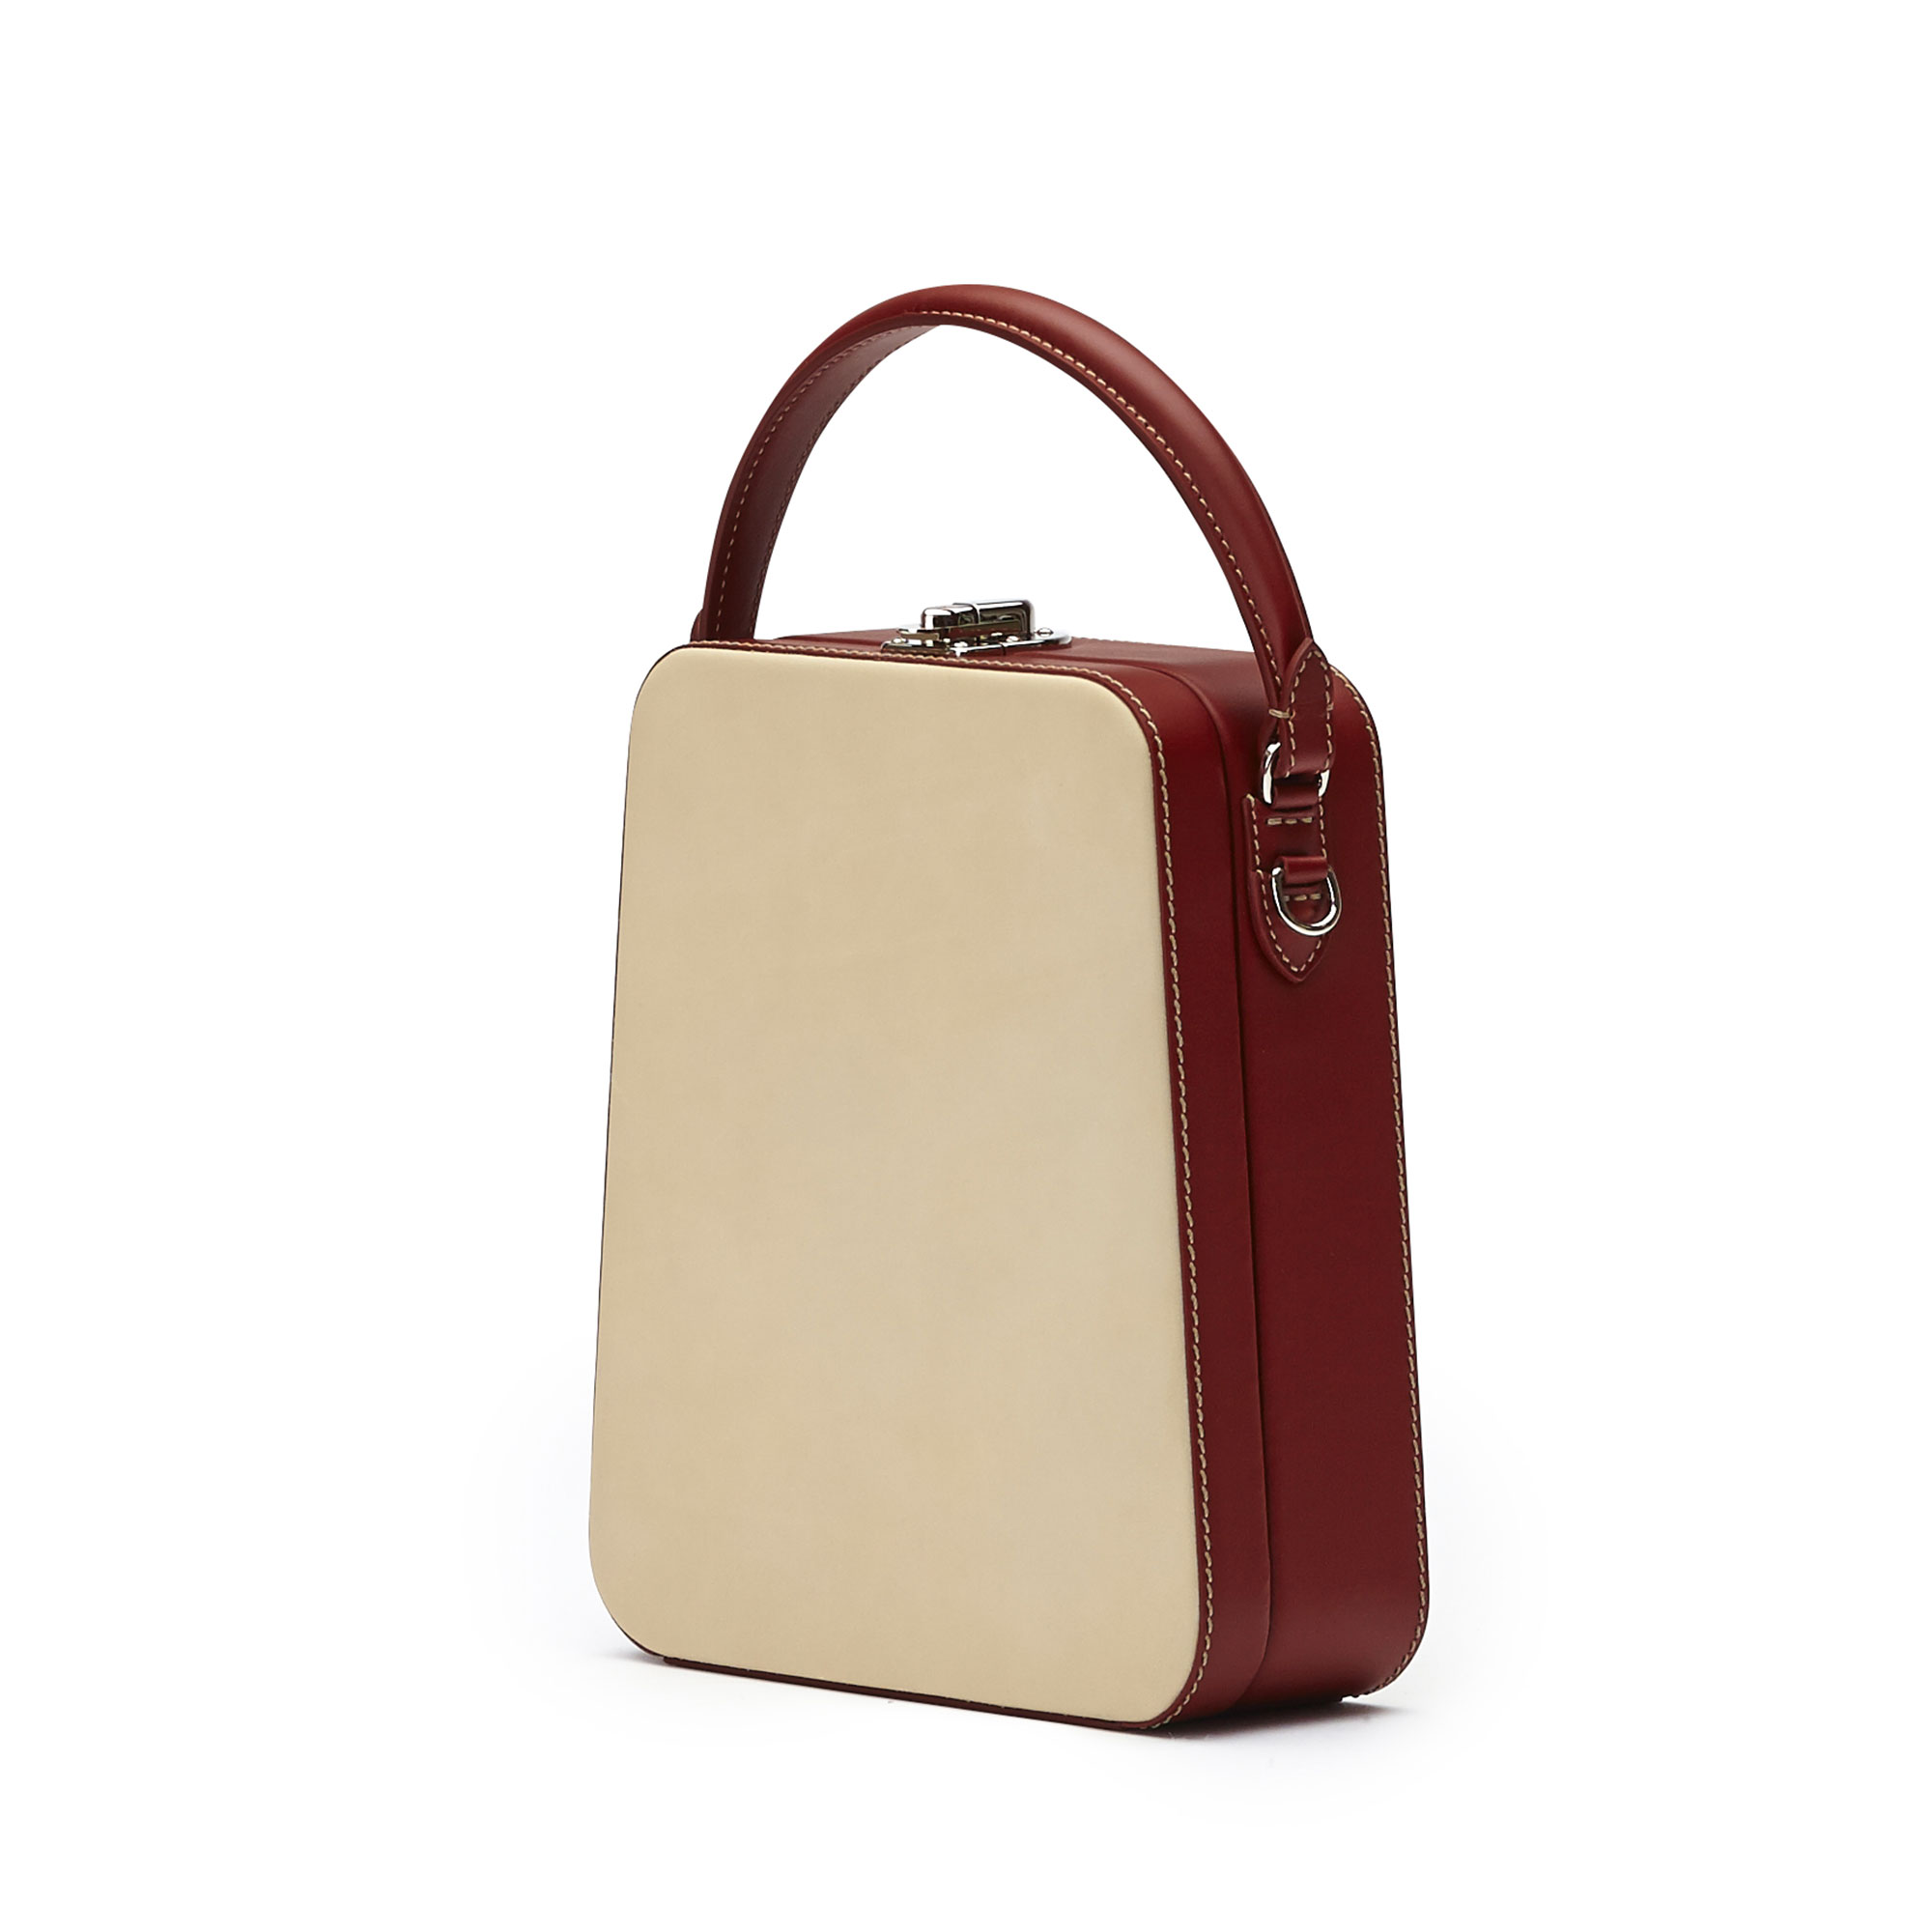 The ivory and chianti color french calf Tall Bertoncina bag by Bertoni 1949 02